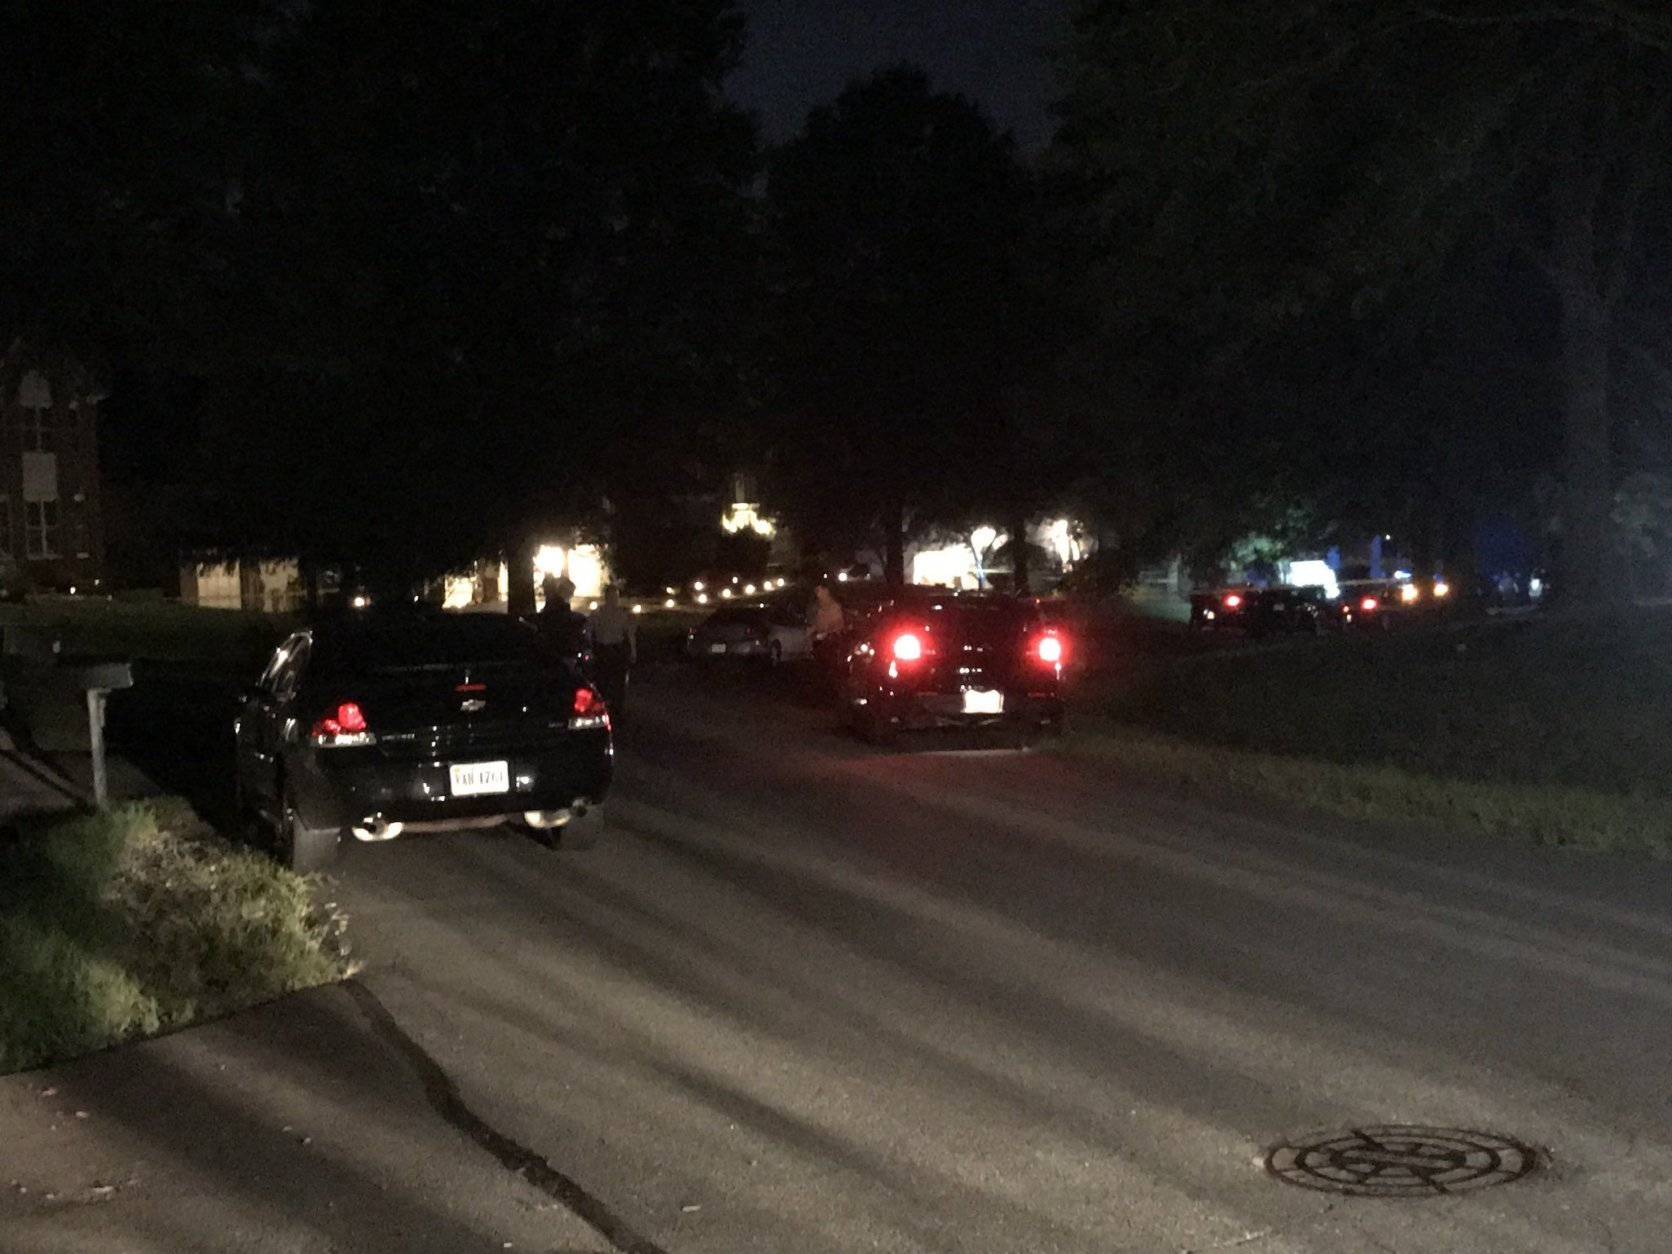 A woman and two juveniles were found dead in the 1000 block of Safa Street, Fairfax County police said. (WTOP/Michelle Basch)